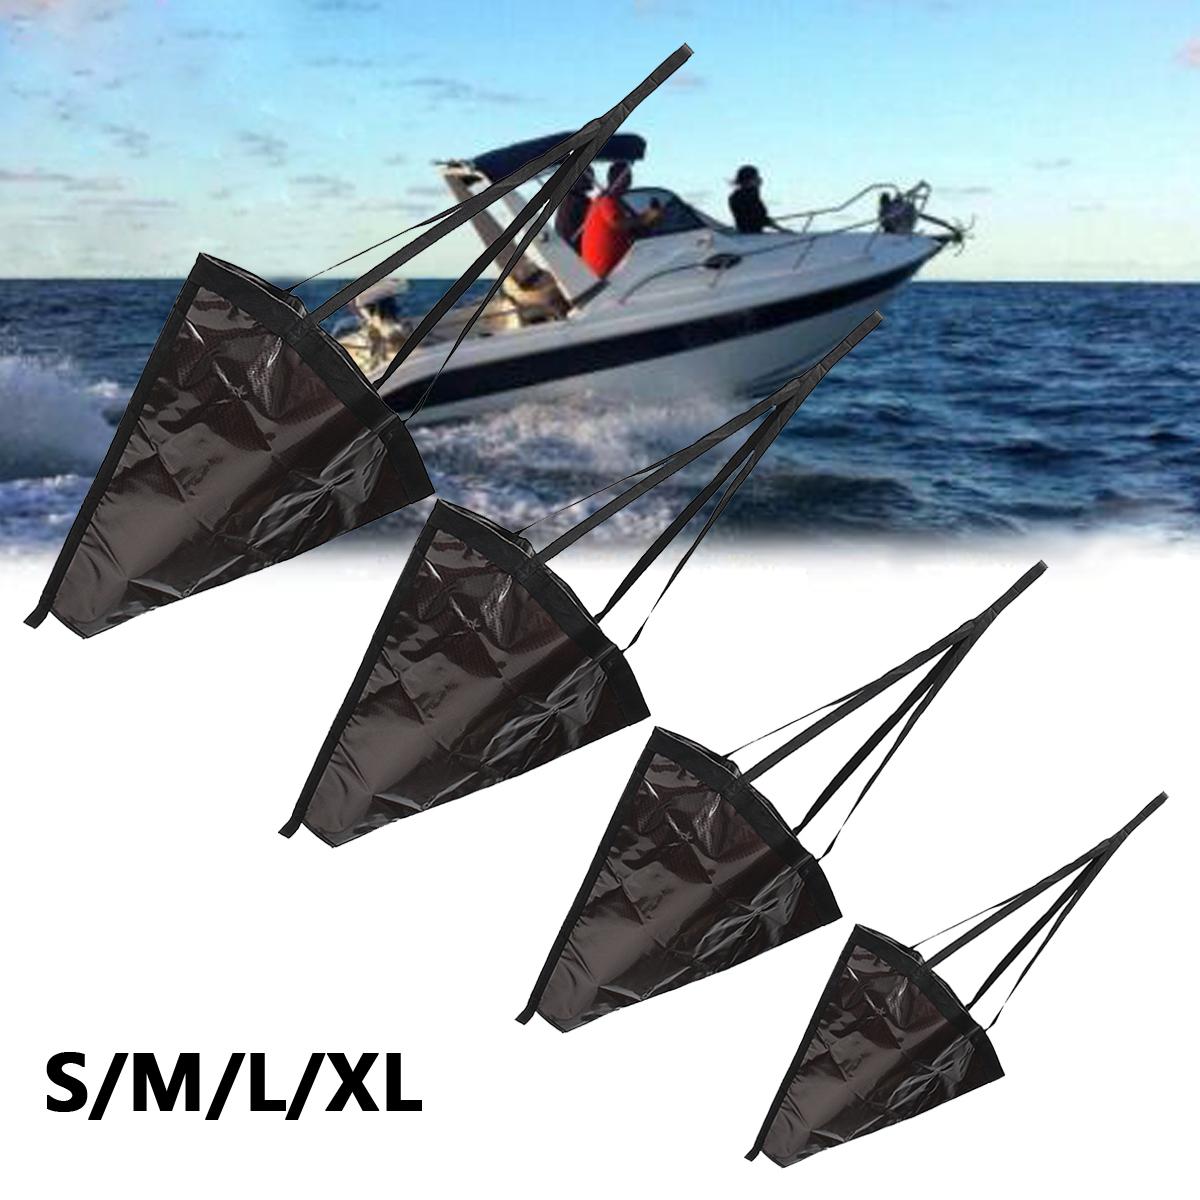 60-135cm Heavy   Sea Anchor Drogue Sail Drift Brake For Fishing For Canoe Inflatable Boat Fishing Boat Dinghy Yacht